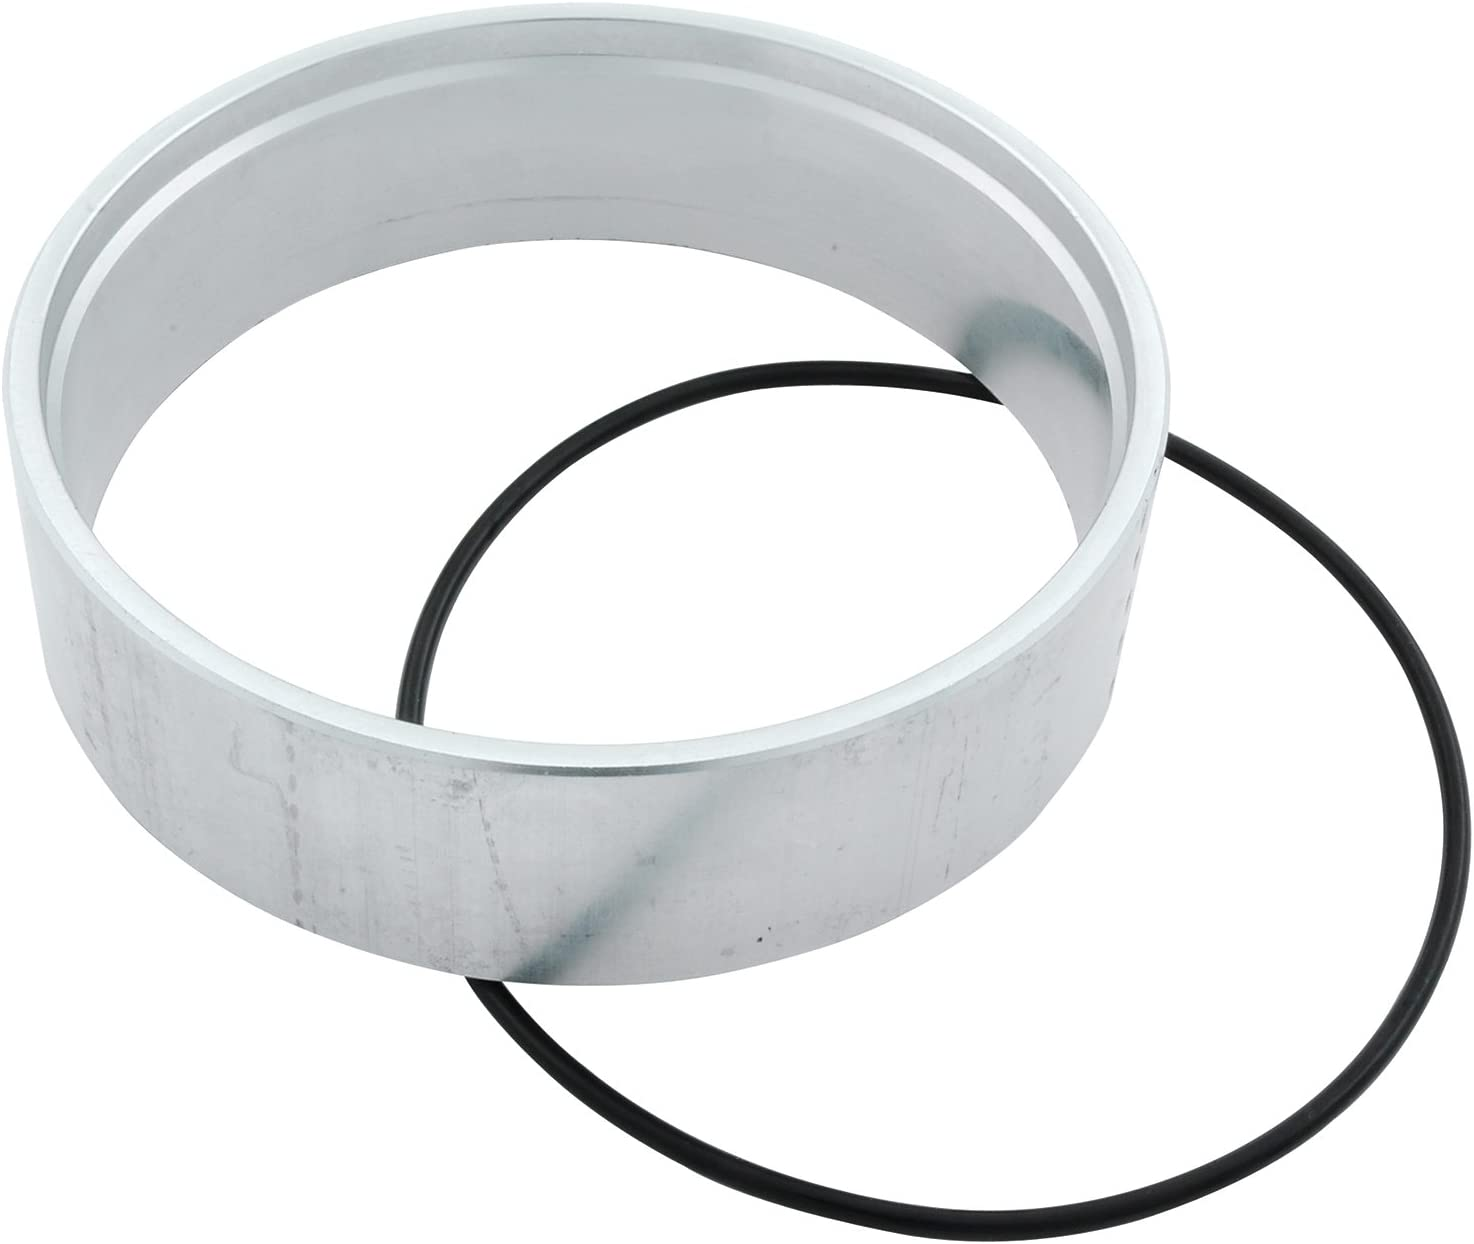 X AUTOHAUX 1//2 Inch Air Cleaner Spacer Riser Air Filter Spacer for Ford 350 Silver